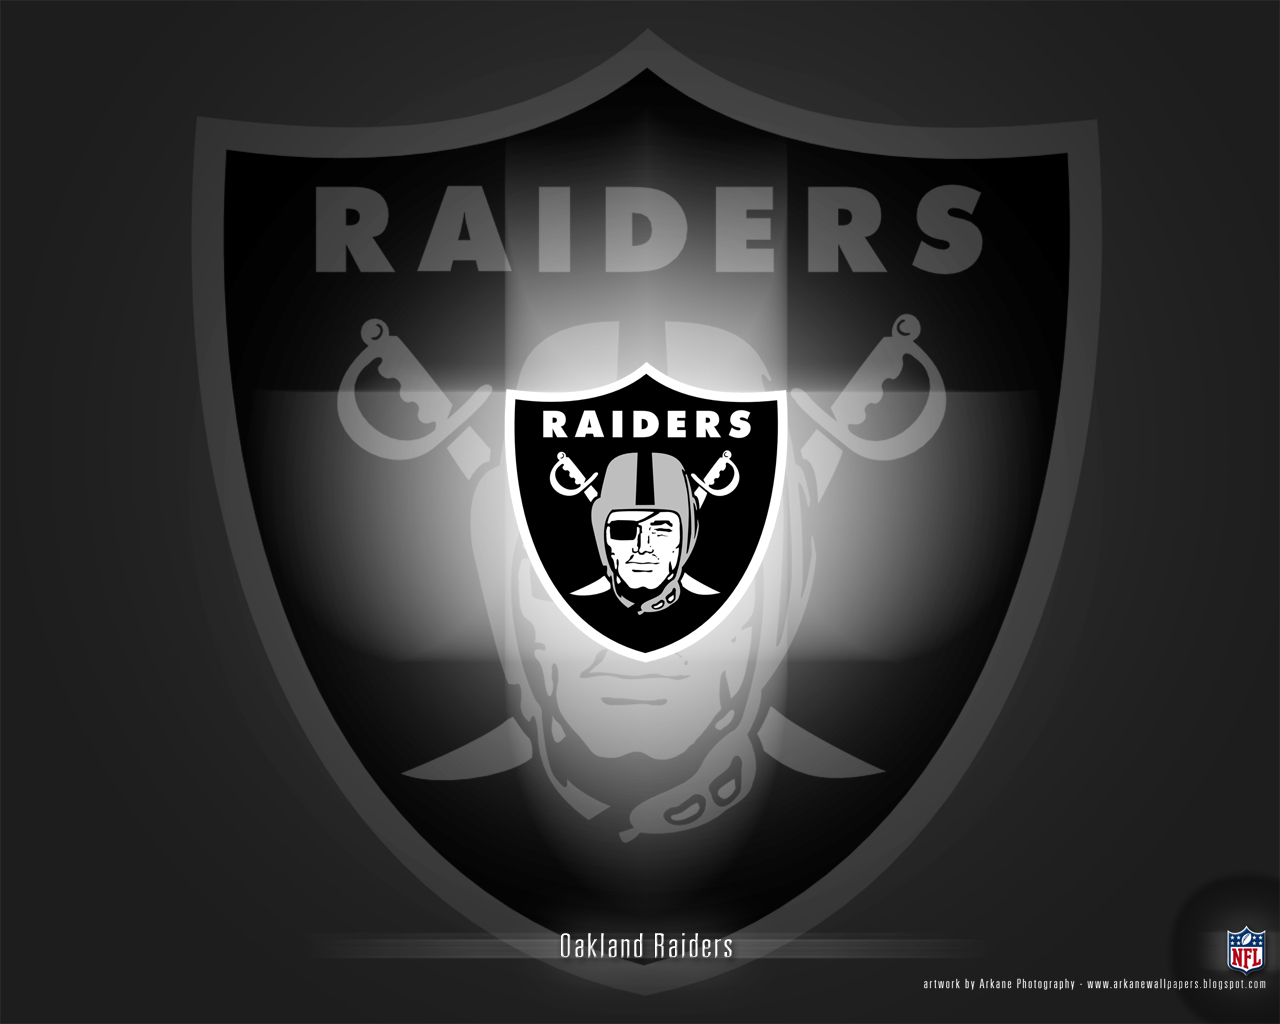 Arkane NFL Wallpapers Oakland Raiders   Vol 1 1280x1024